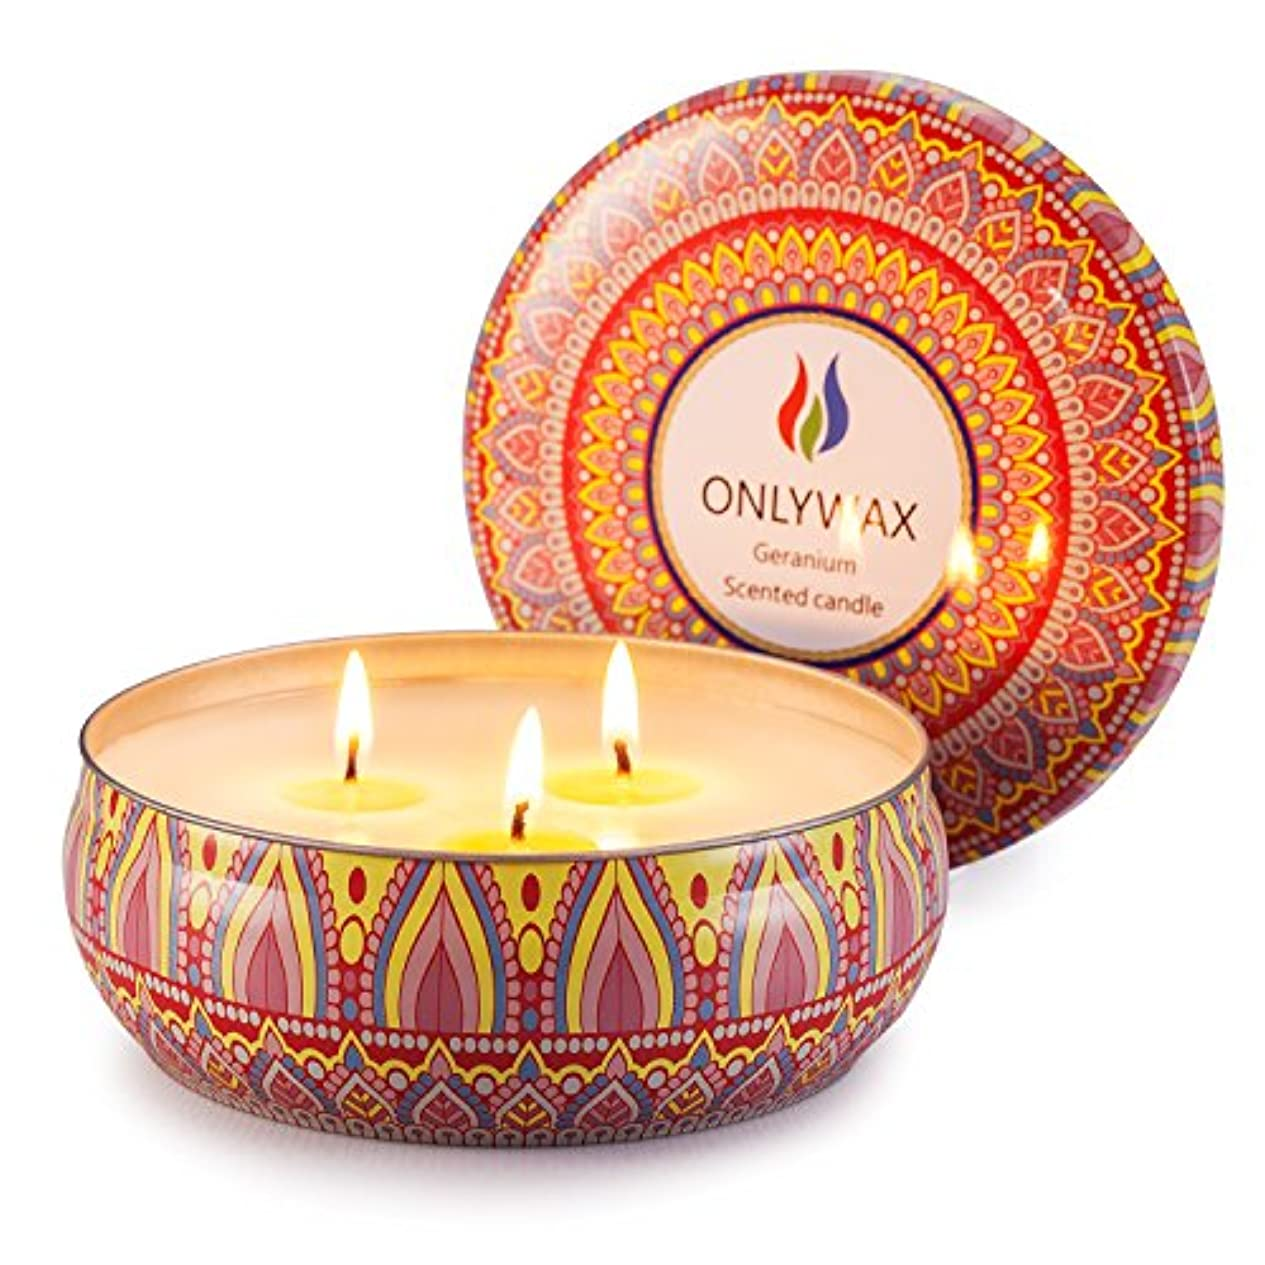 Scented Candles Soy Wax 3 Wick Tin 70 Hour Burn,Essential Oils-for Stress Relief and Relaxation,Outdoor and Indoor